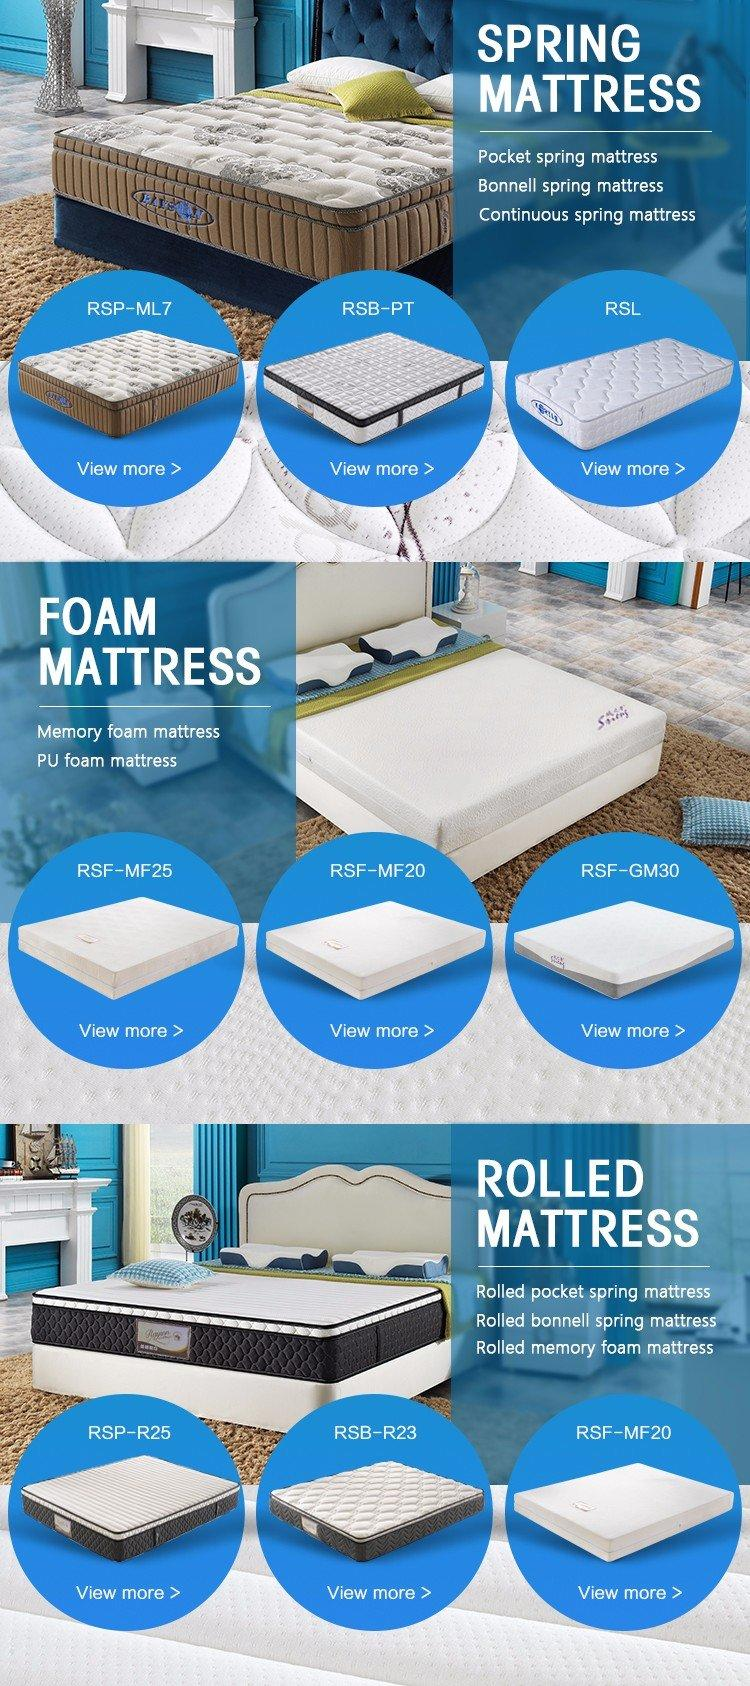 Rayson Mattress High-quality sleepwell memory foam mattress manufacturers